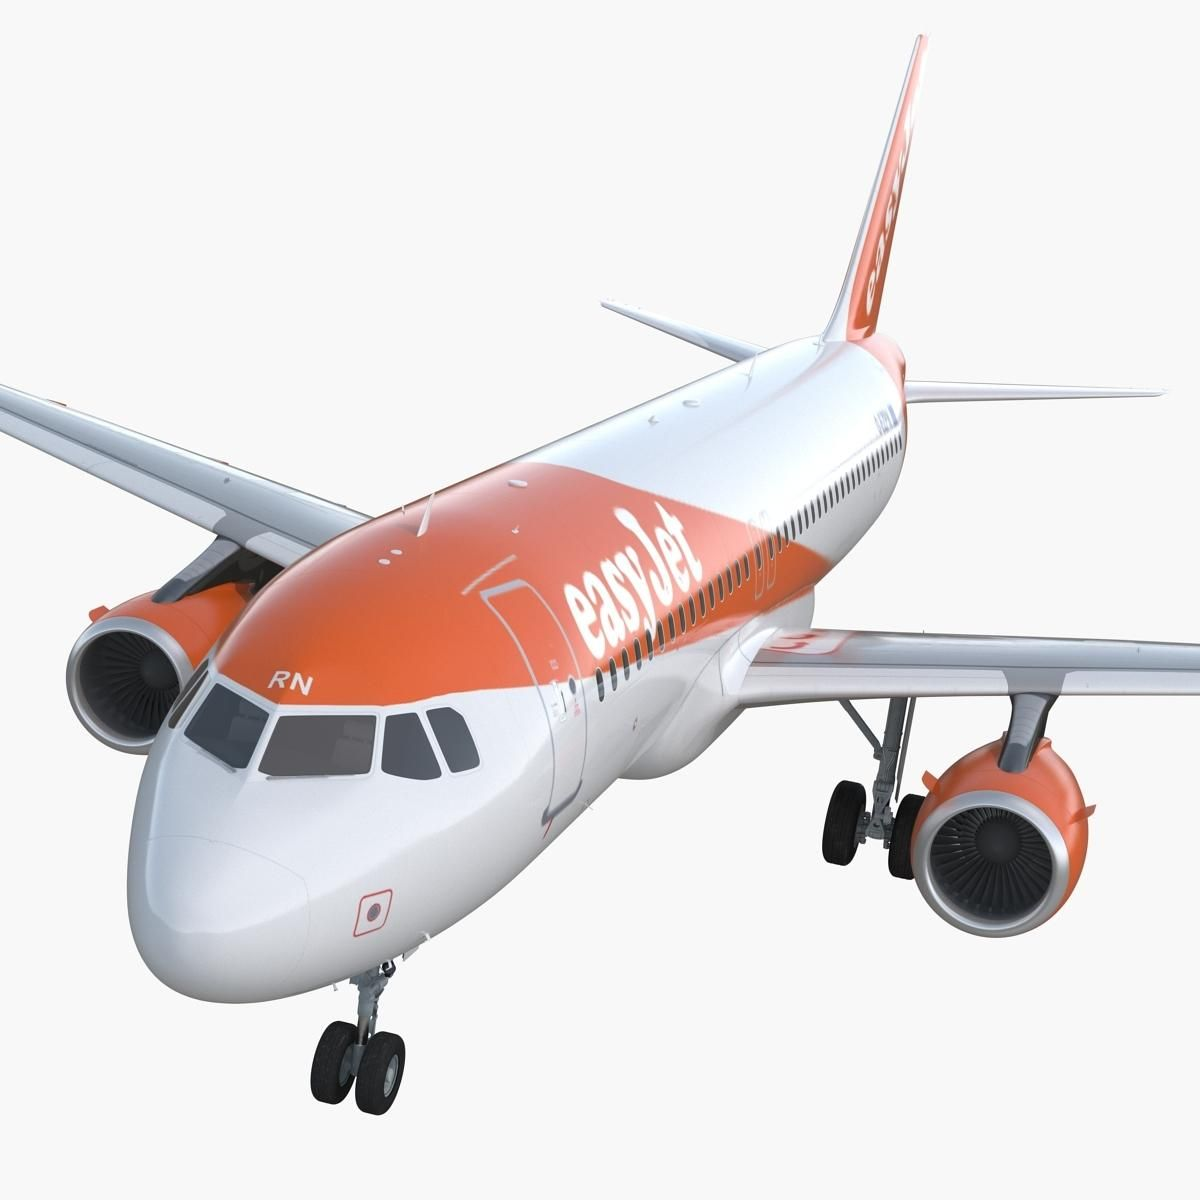 Airbus A320 Easyjet Airline 3d Model Ad Airbus Easyjet Model Airline 3d Model Airbus Airline